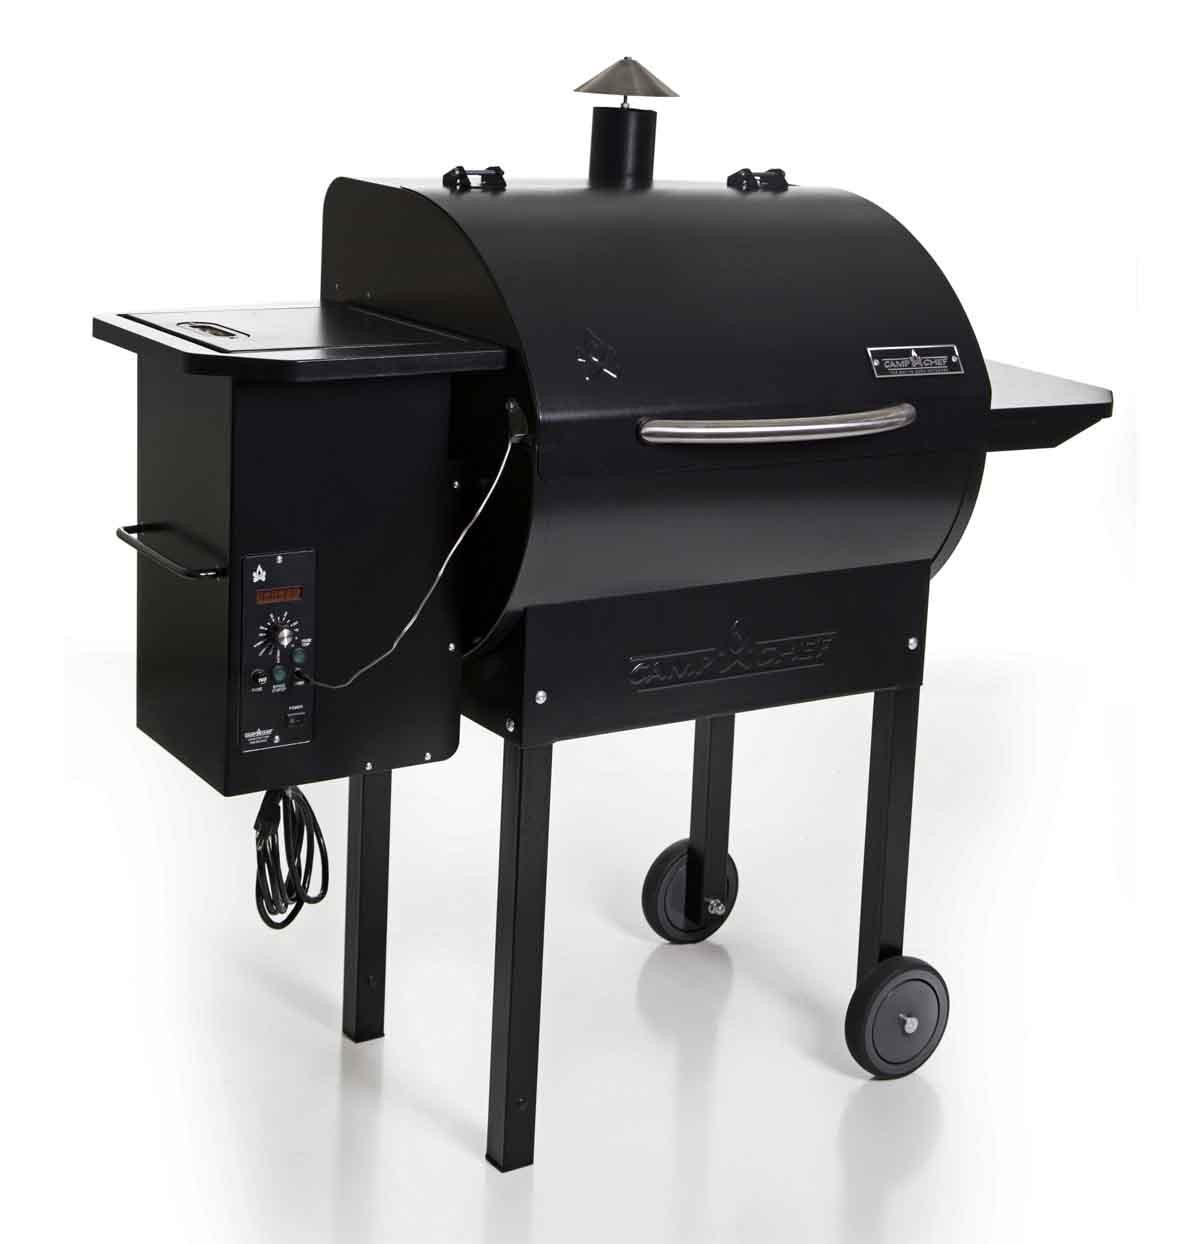 camp chef pg24 wood pellet grill review - Traeger Grill Reviews